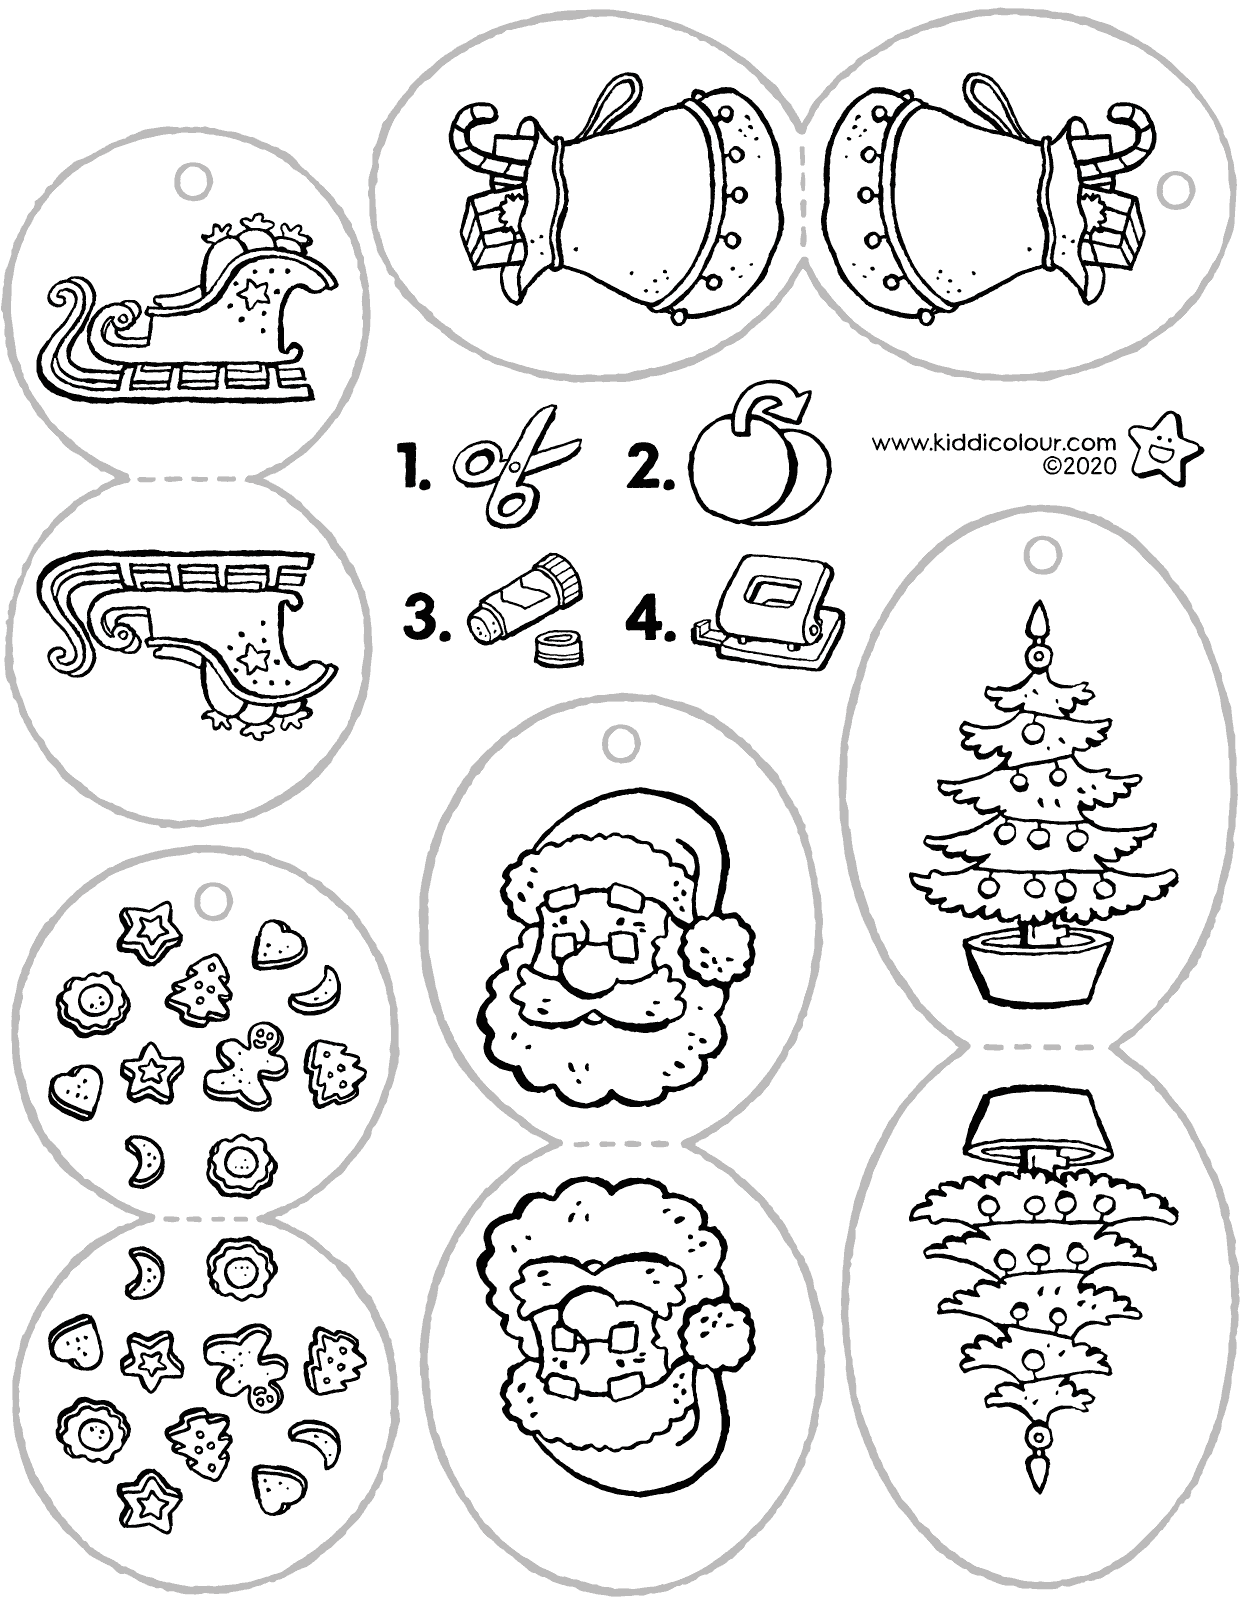 Christmas tree decoration colouring page drawing picture 01V